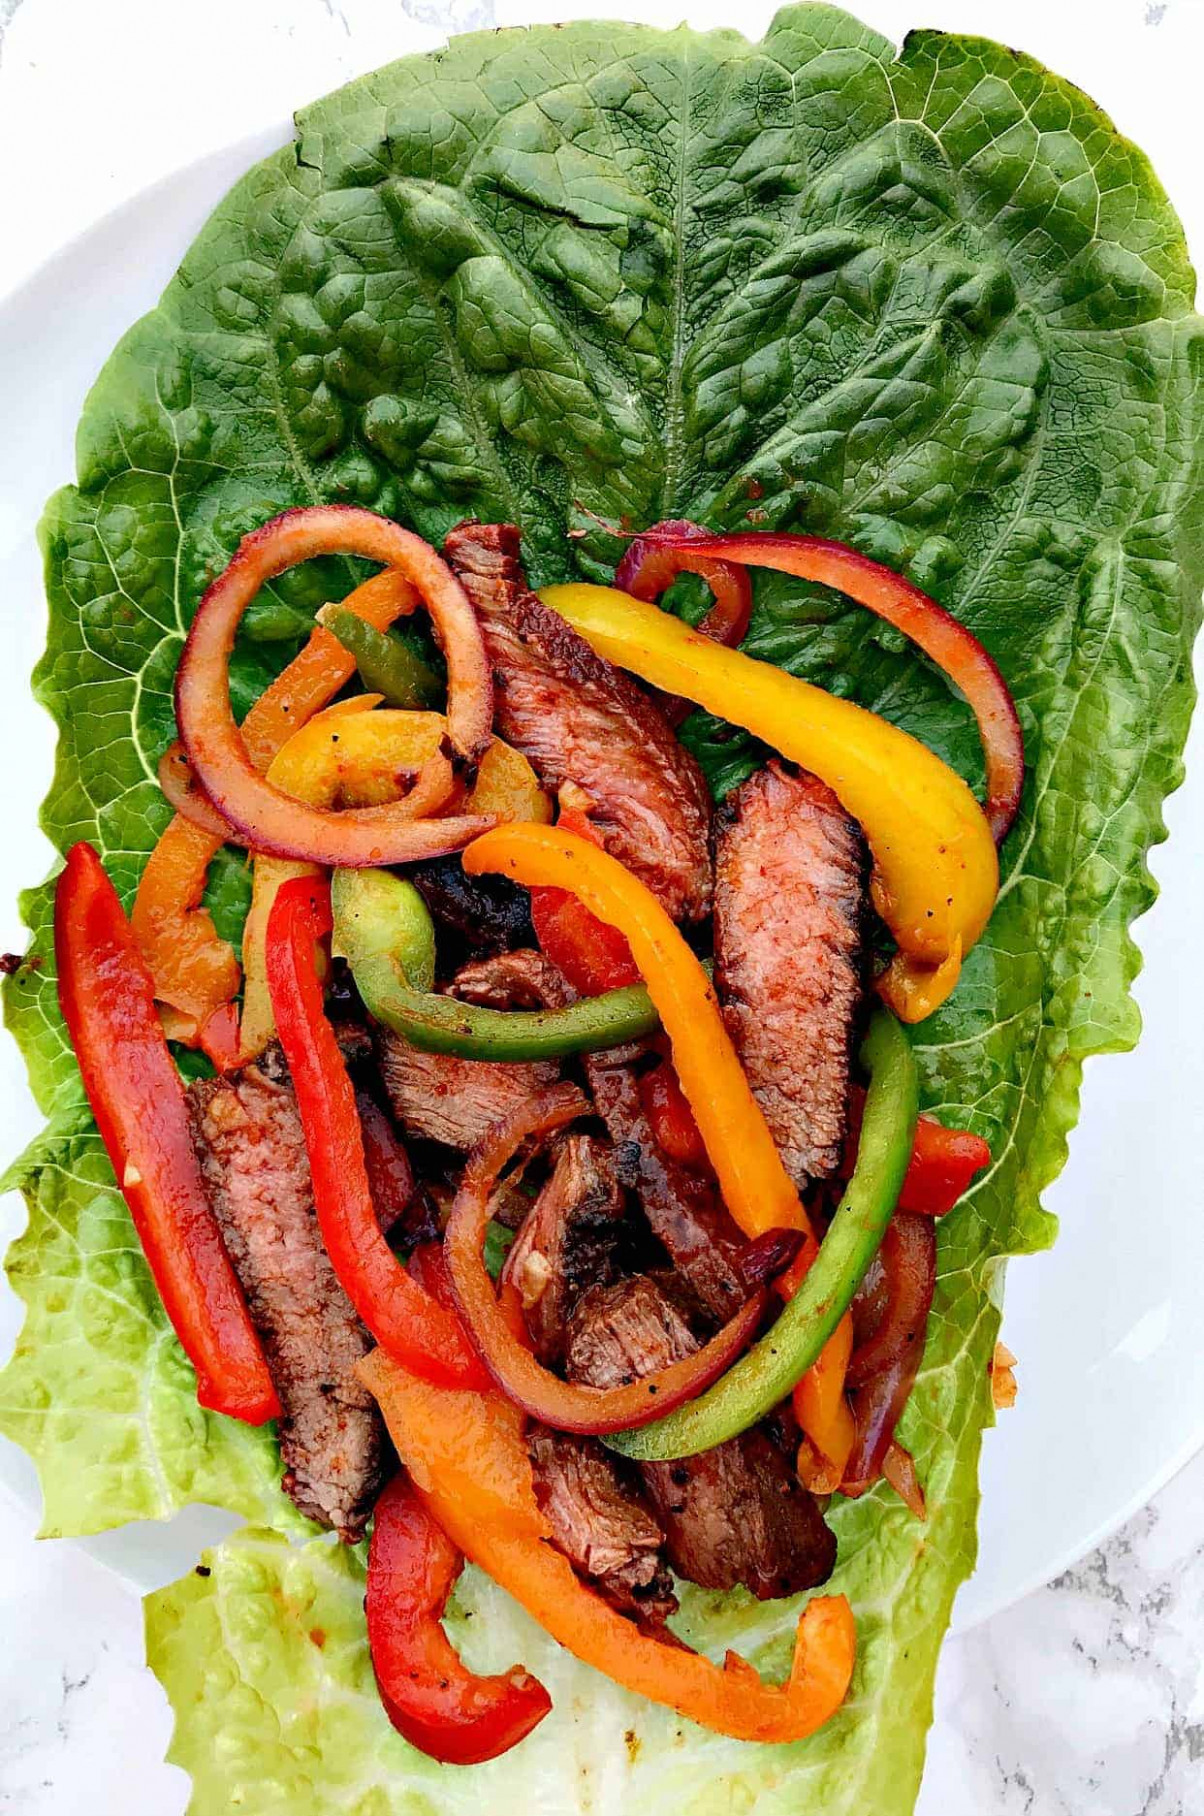 12 Delicious, Quick and Easy Low-Carb Paleo Recipes For Dinner - recipes atkins dinner